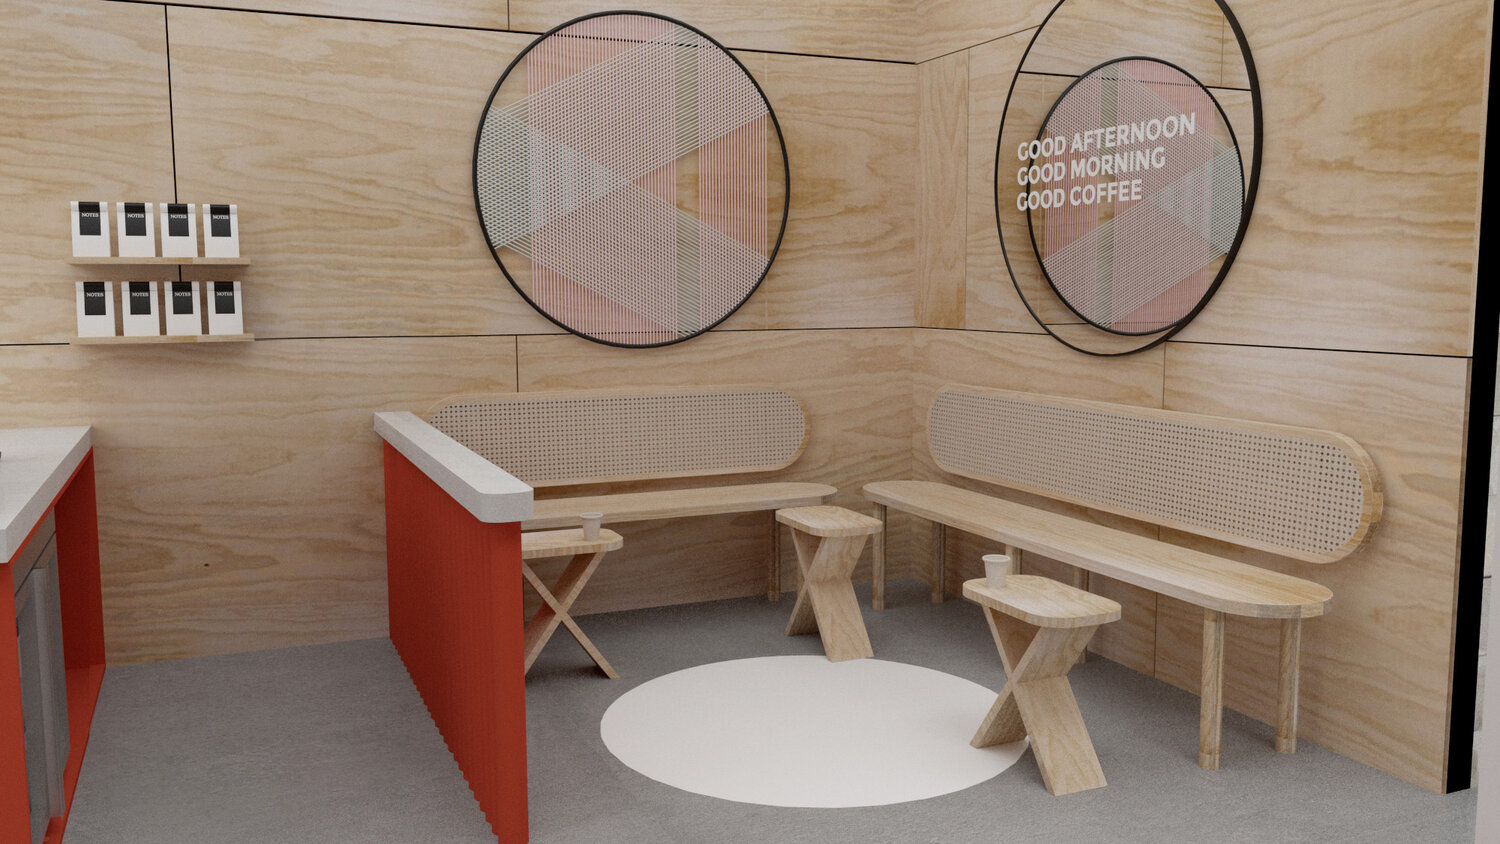 lunarlunar_interior_design_cafe_good_coffee_route 1_maltby_street_seating.jpg